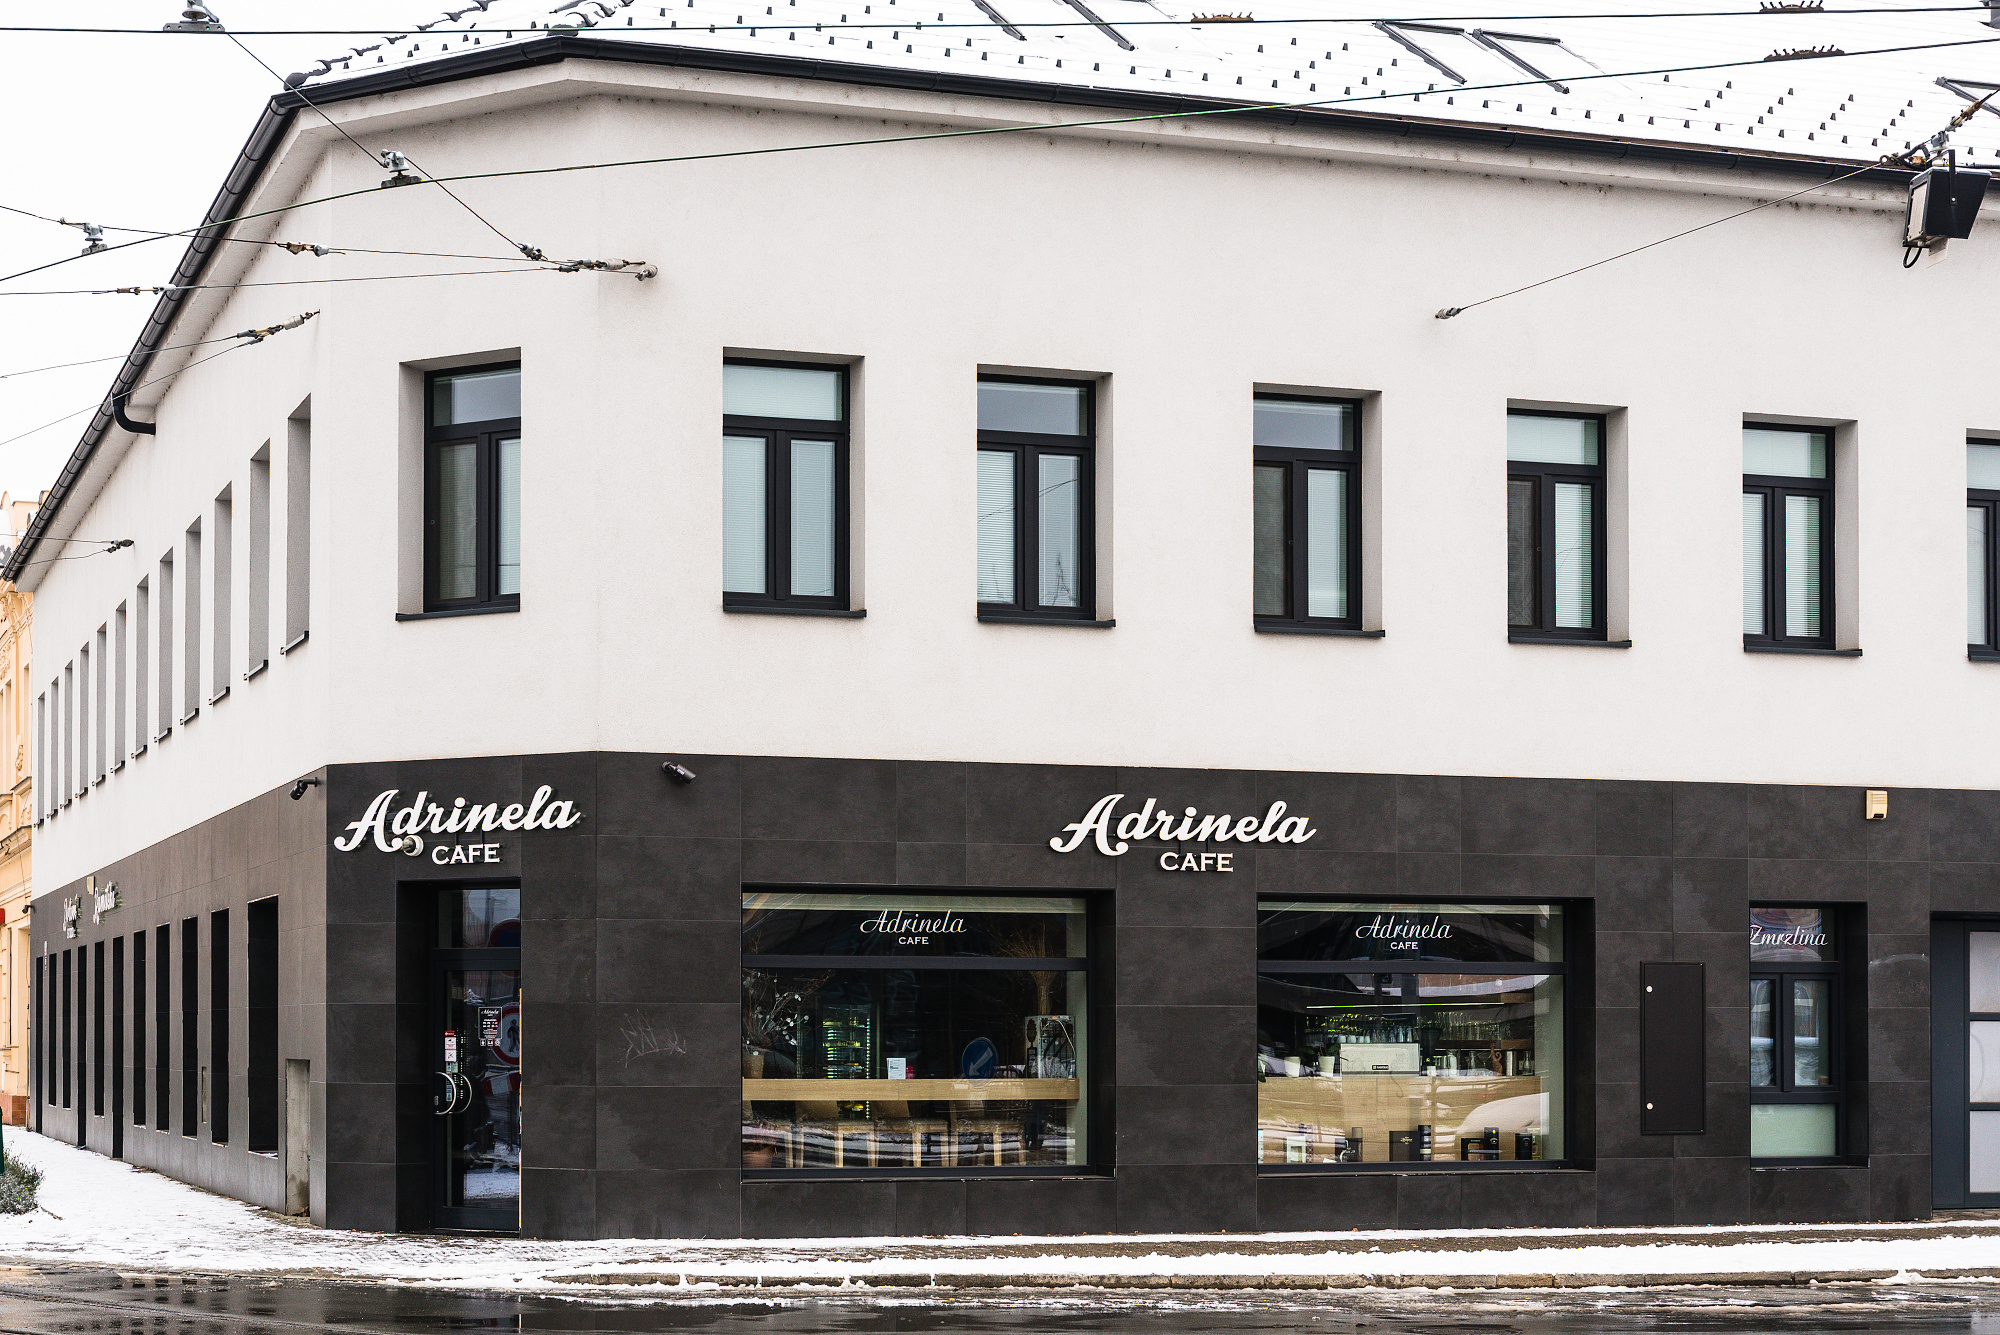 Adrinela cafe 4